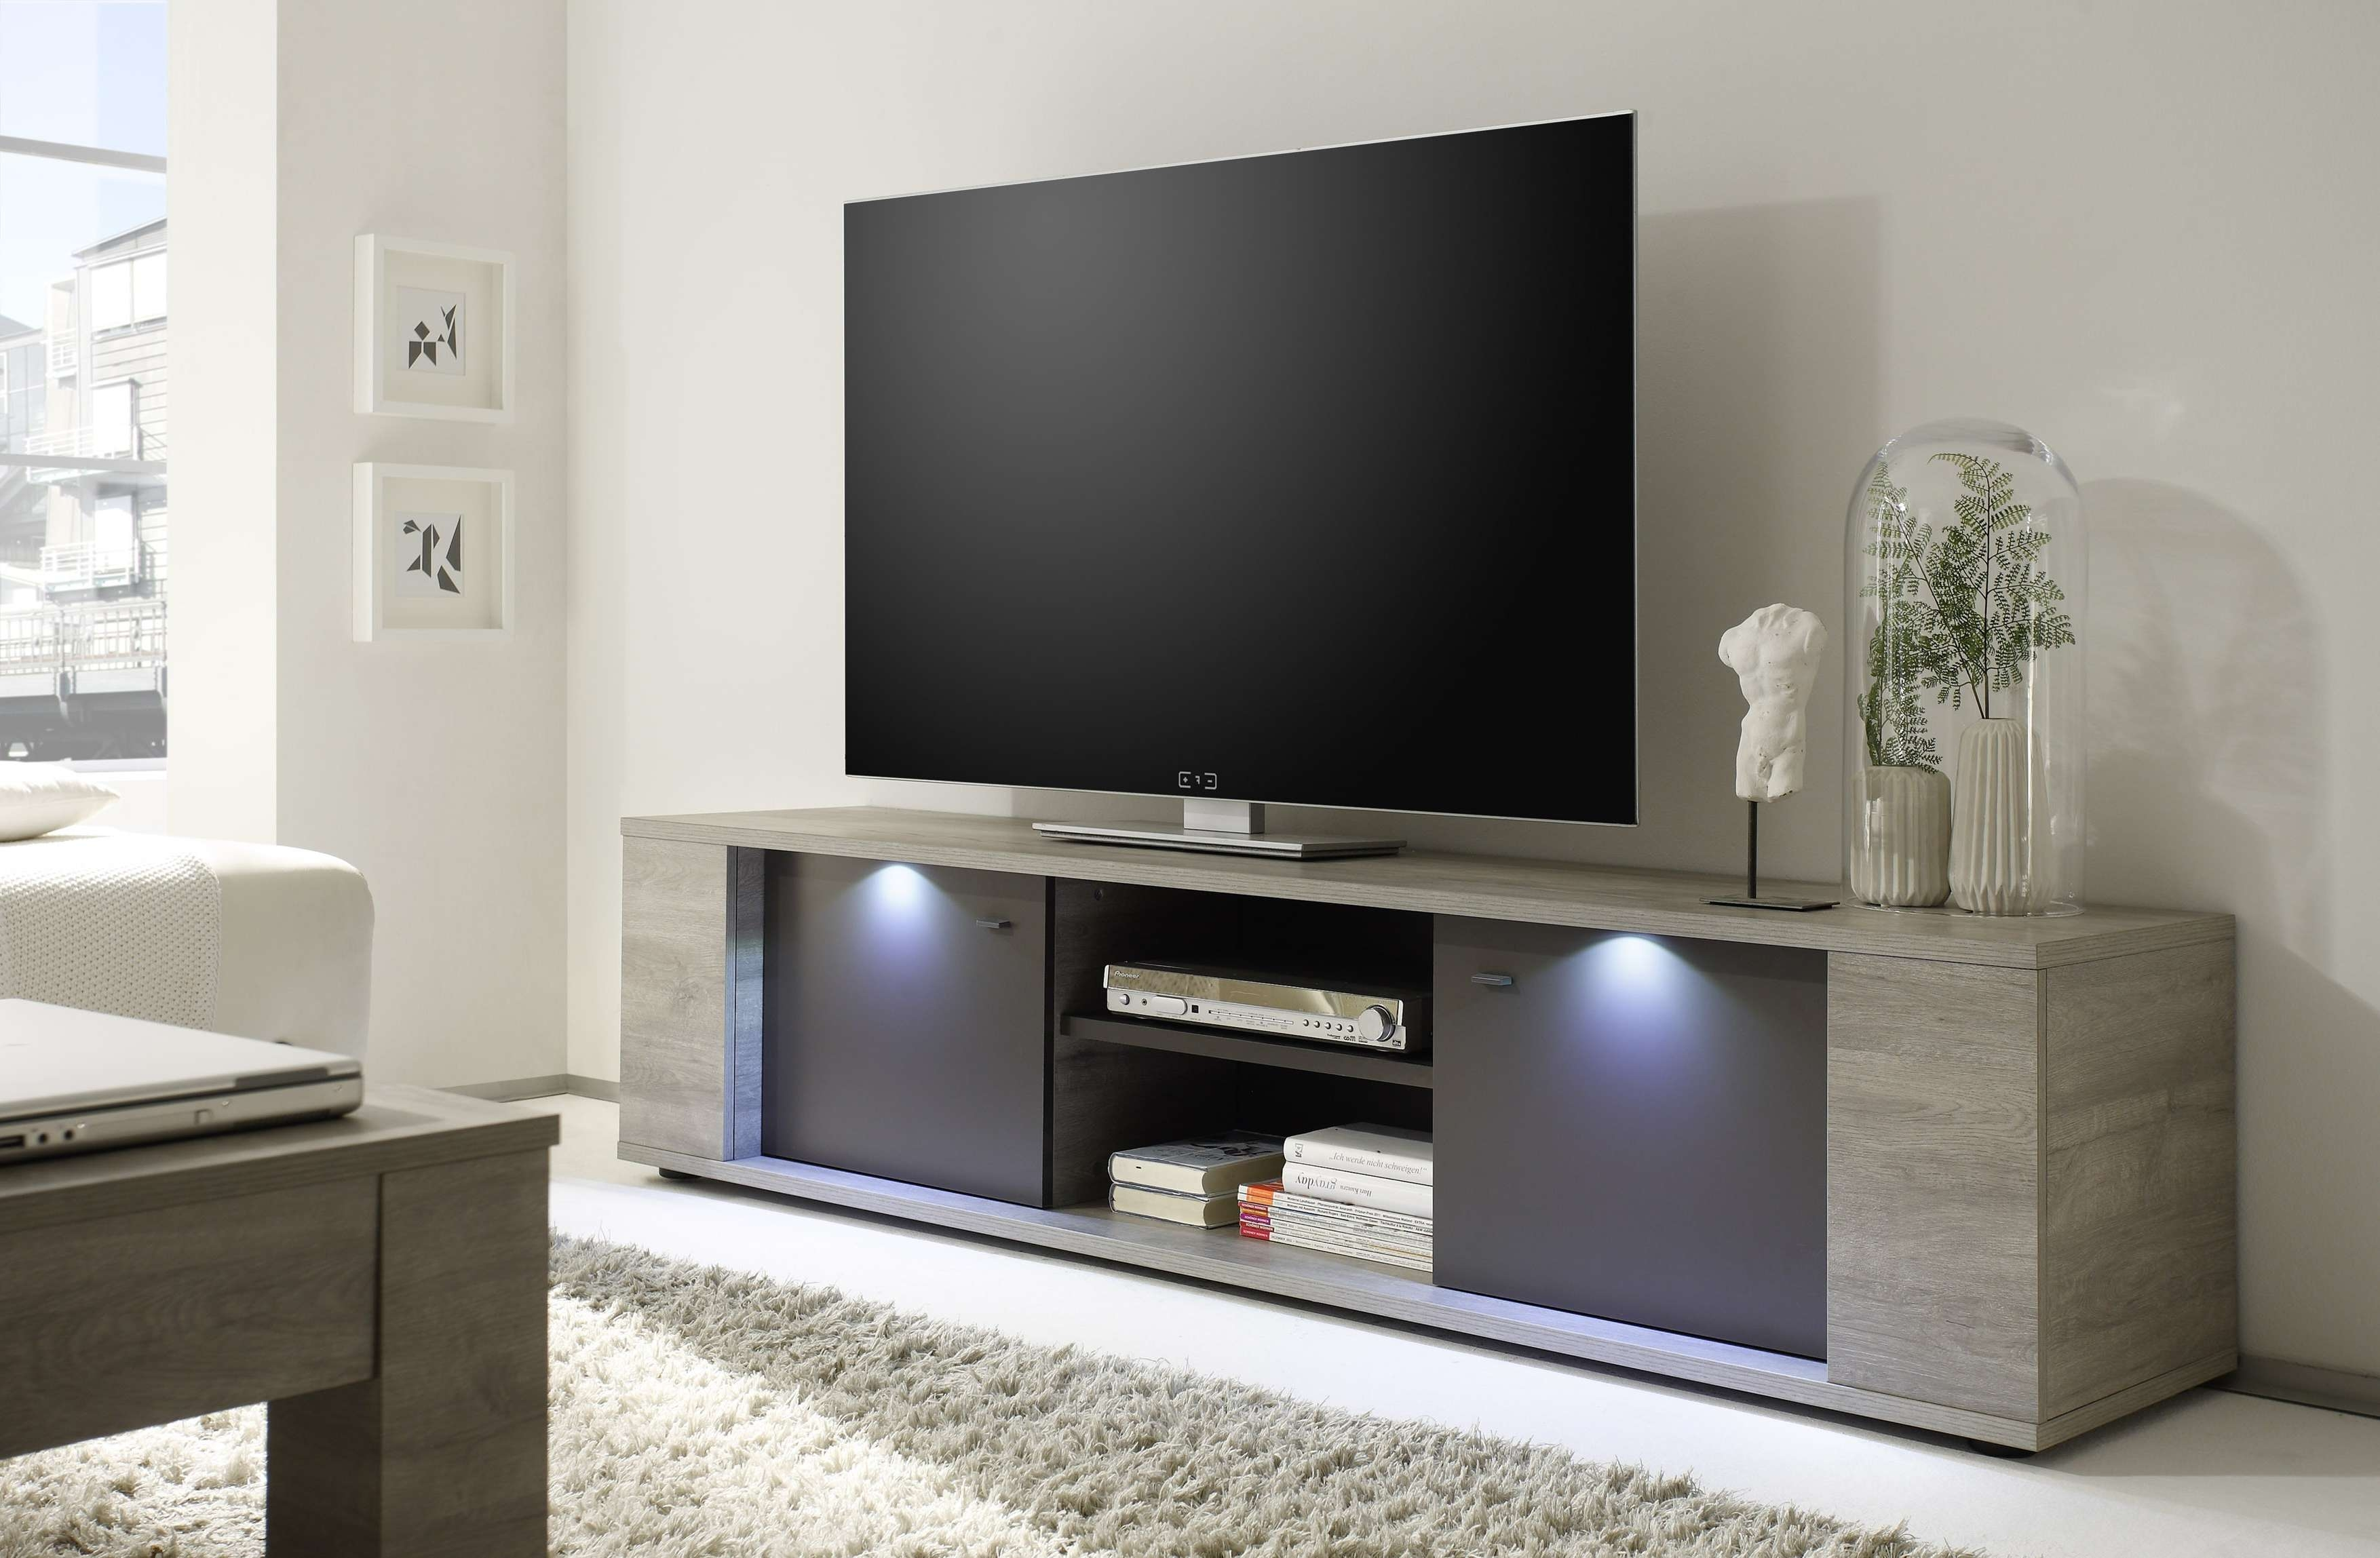 Sidney Big Tv Stand Buy Online At Best Price – Sohomod Within Big Tv Stands Furniture (View 12 of 15)